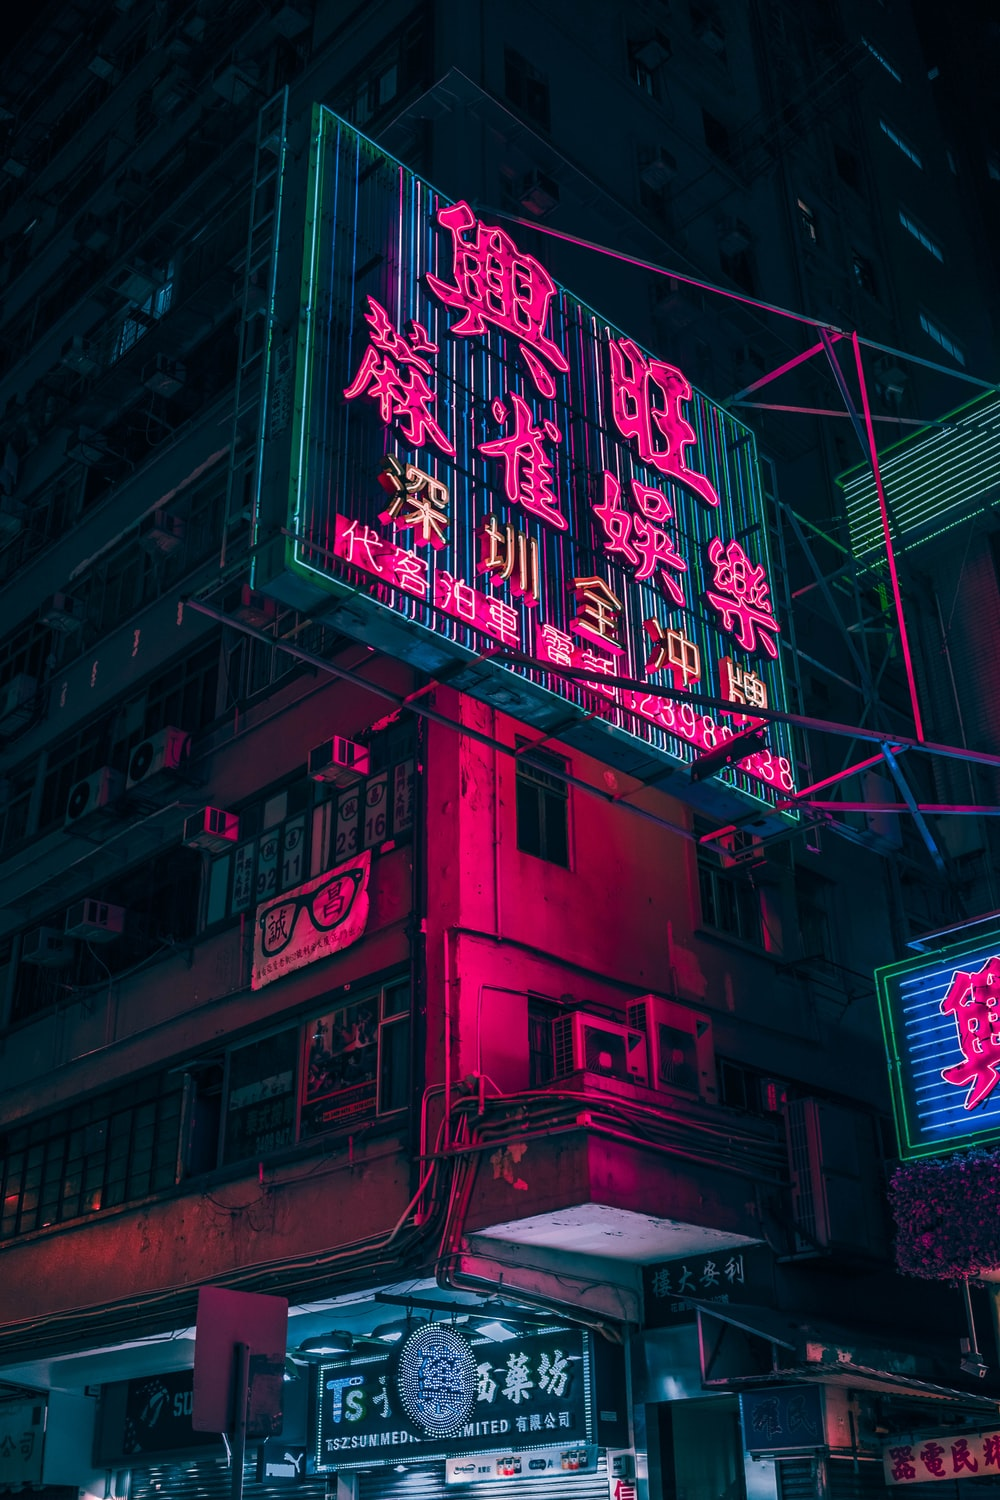 closeup photo of red and black lighted signage